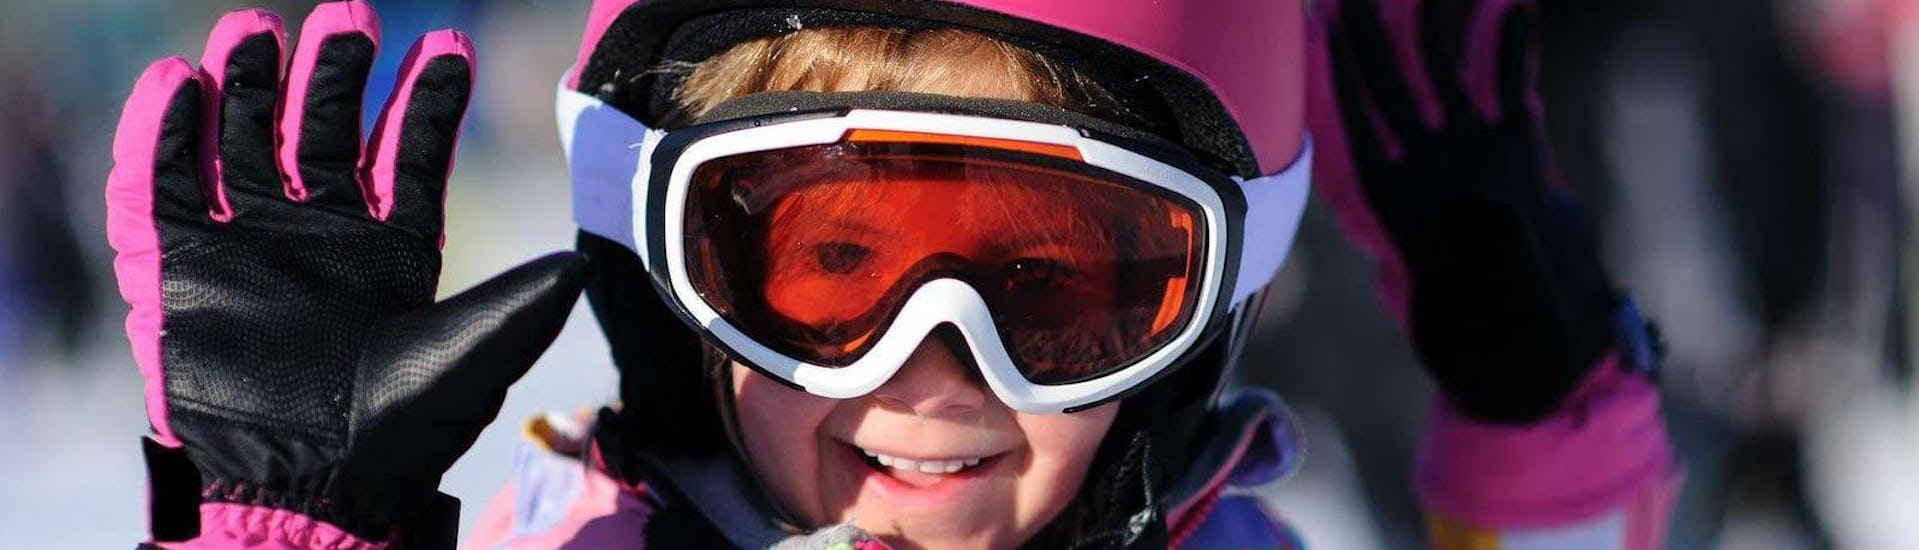 Private Ski Lessons for Kids - Low Season - All Levels